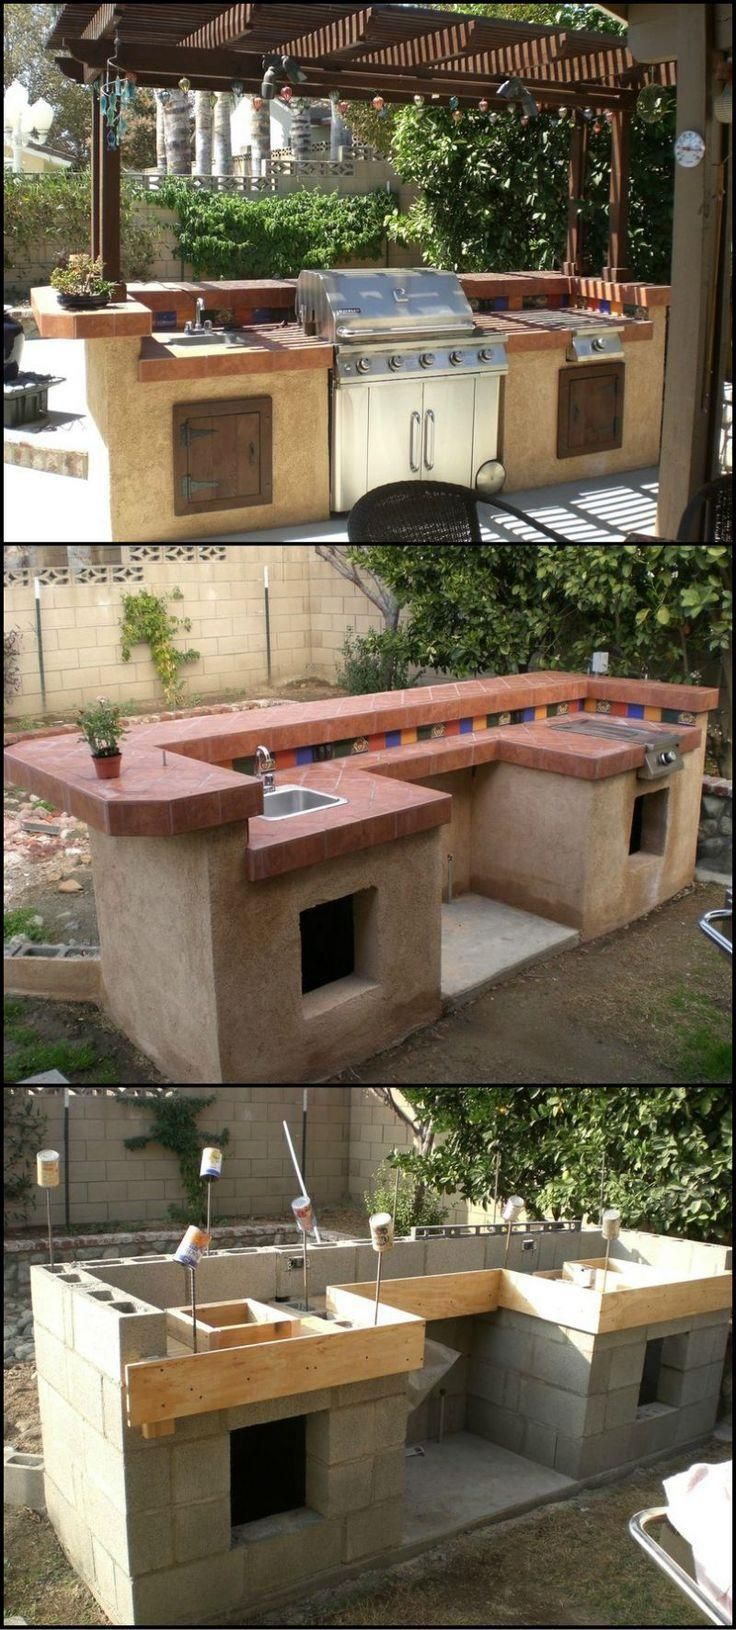 Outdoor cinder block kitchen things to make pinterest kitchens